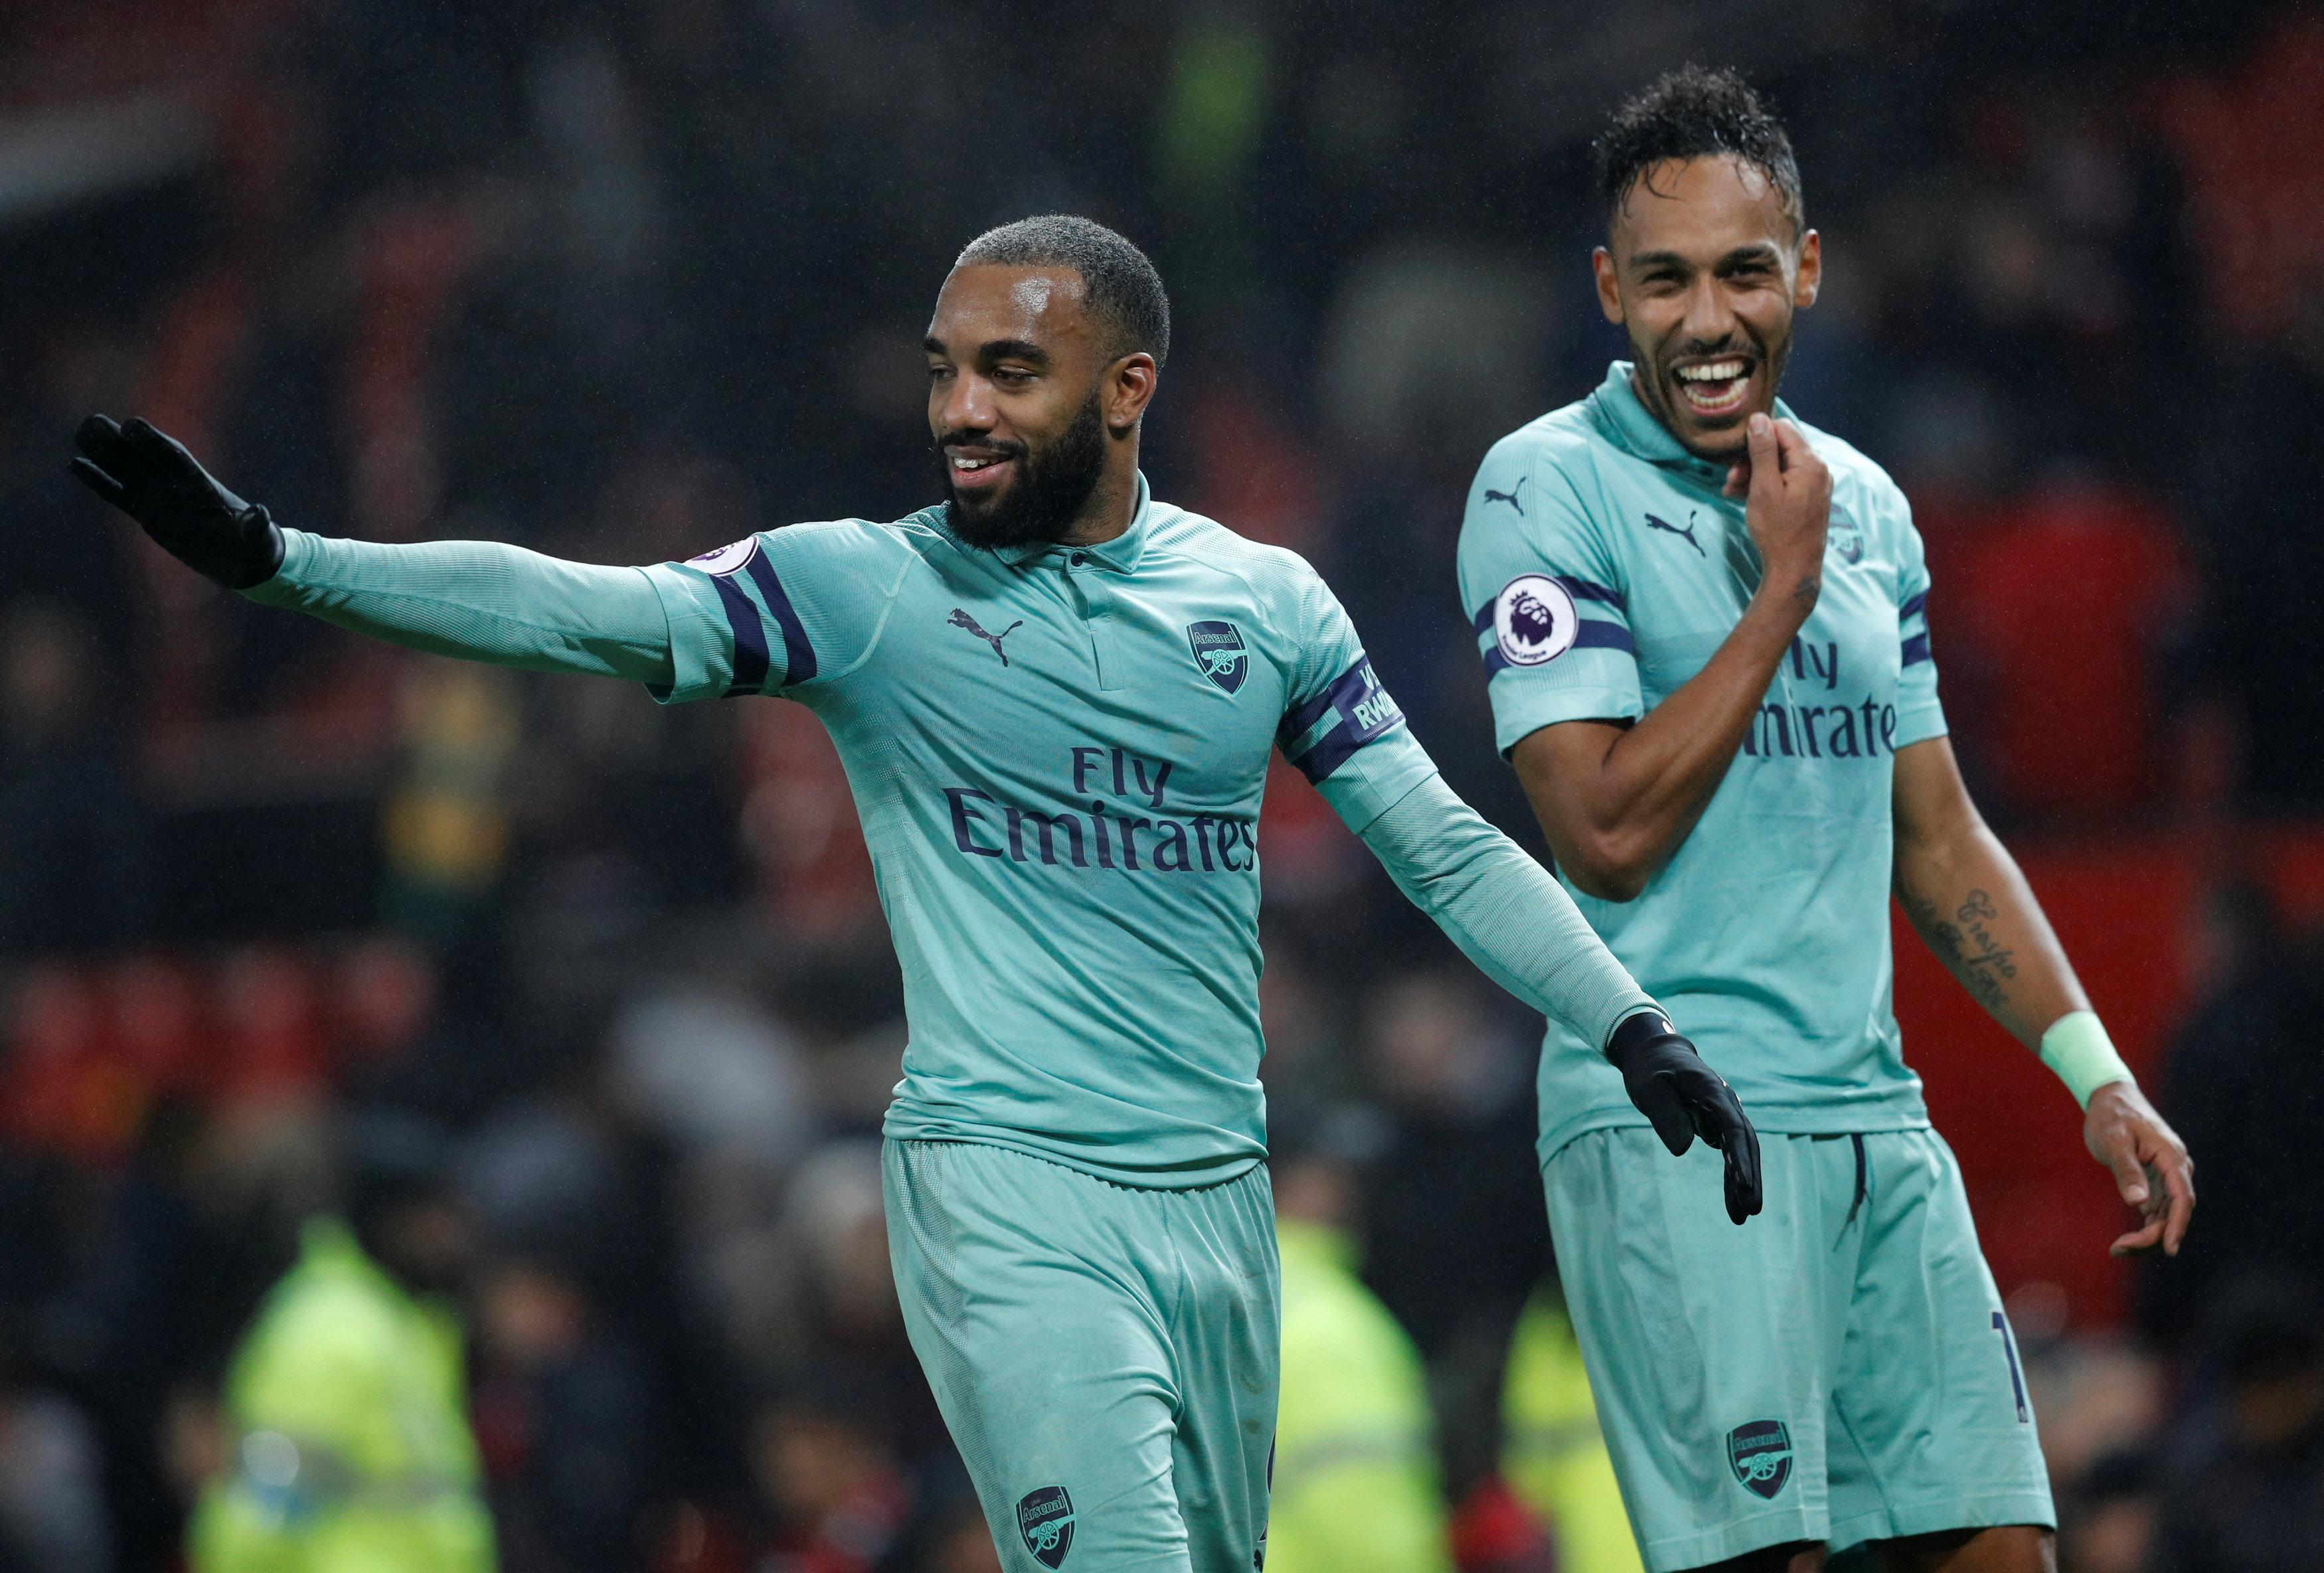 Morgan singled out Alexandre Lacazette and Pierre-Emerick Aubameyang for particular criticism